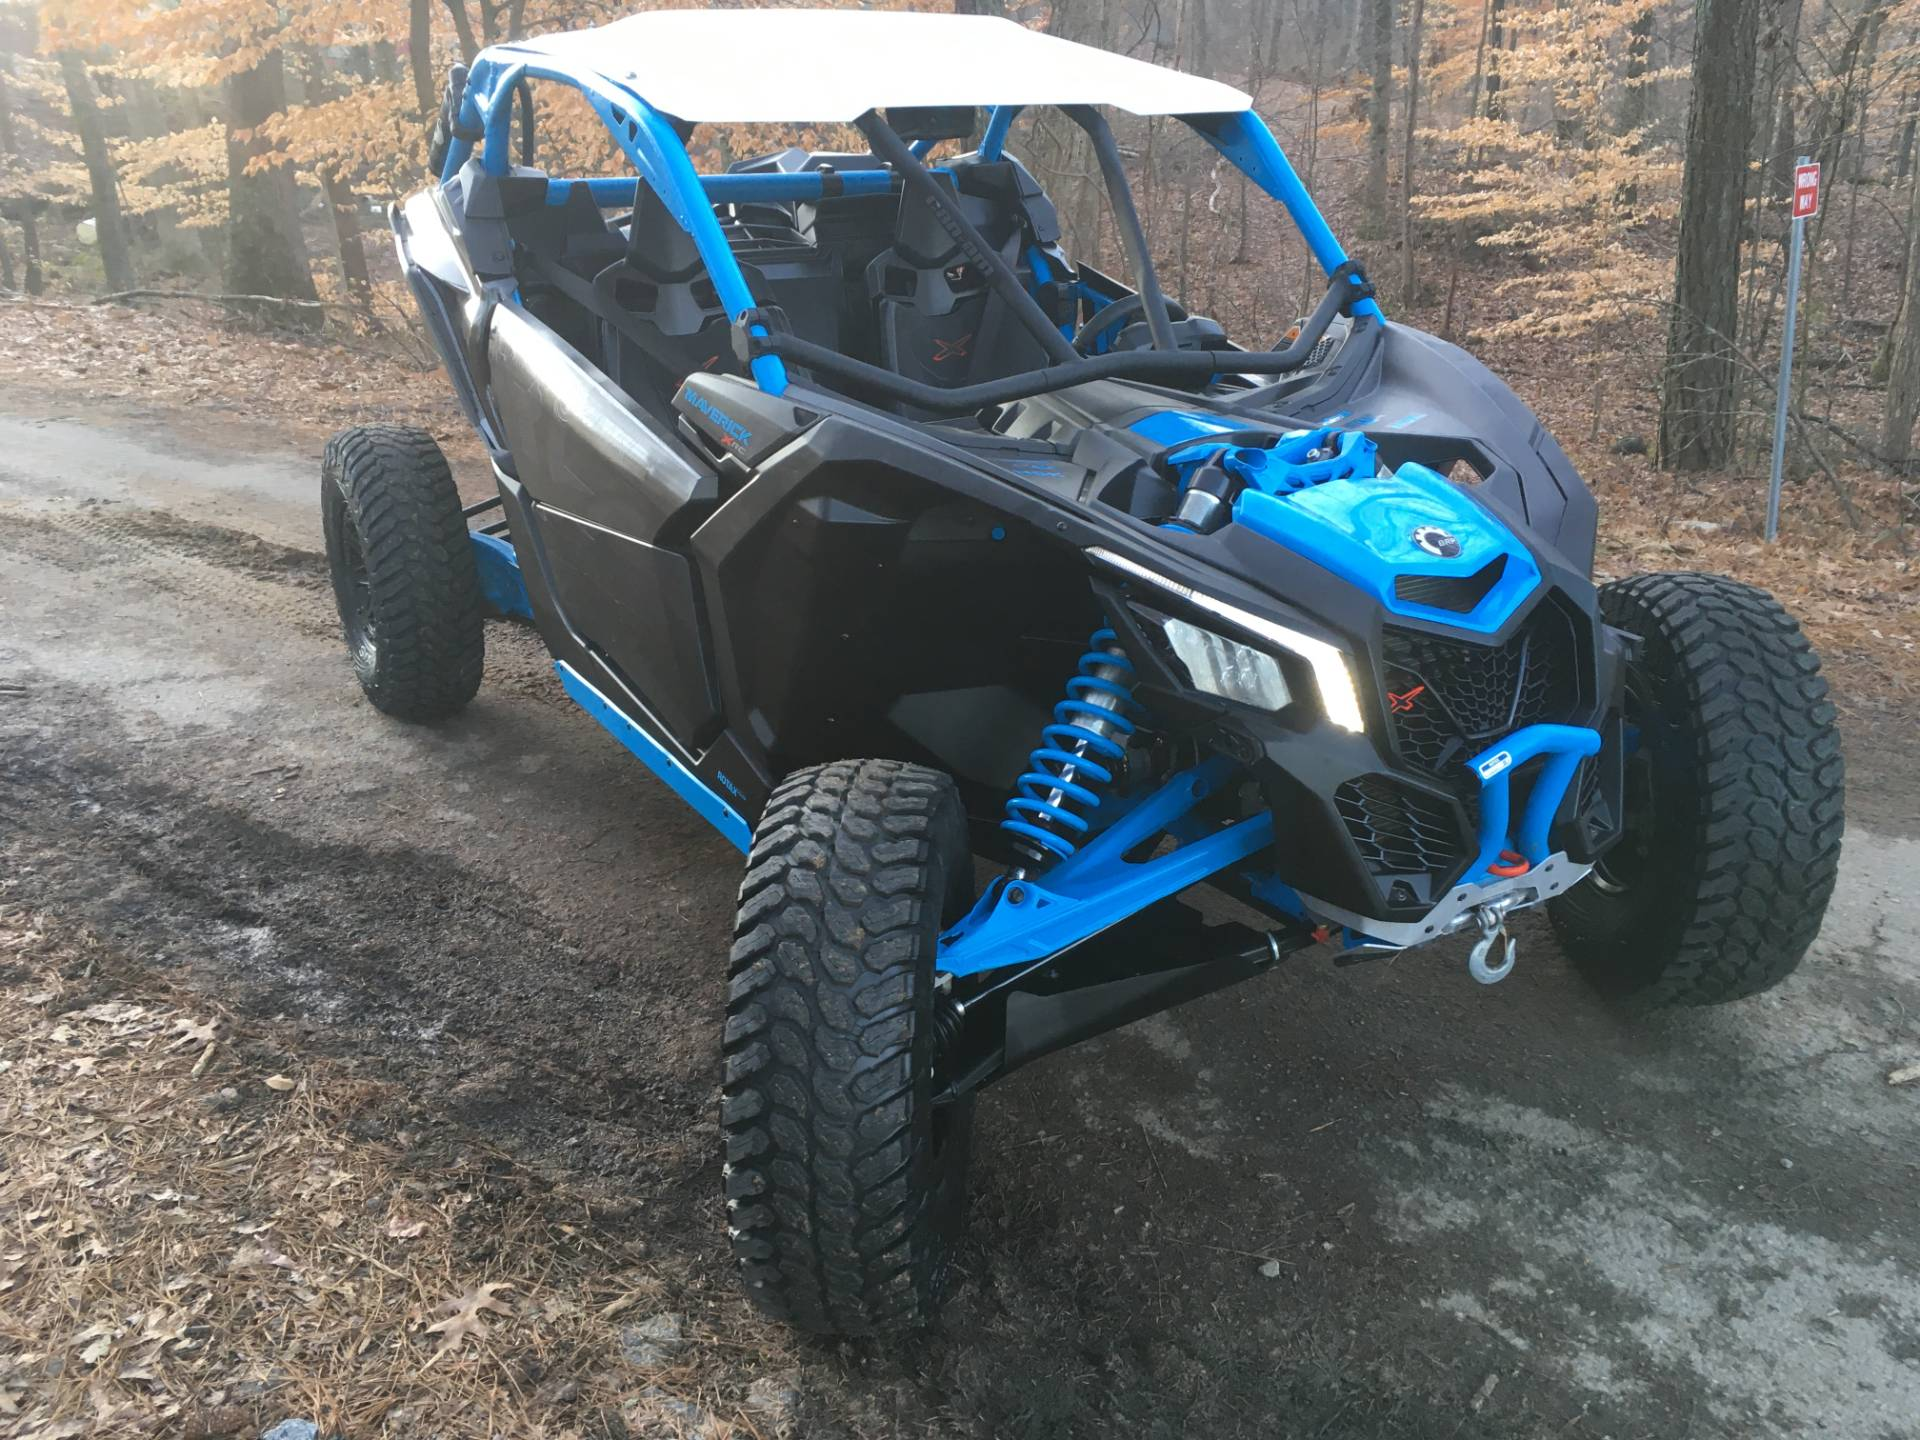 2019 CAN-AM MAVERICK X3 X RC TURBO R in Woodstock, Georgia - Photo 5